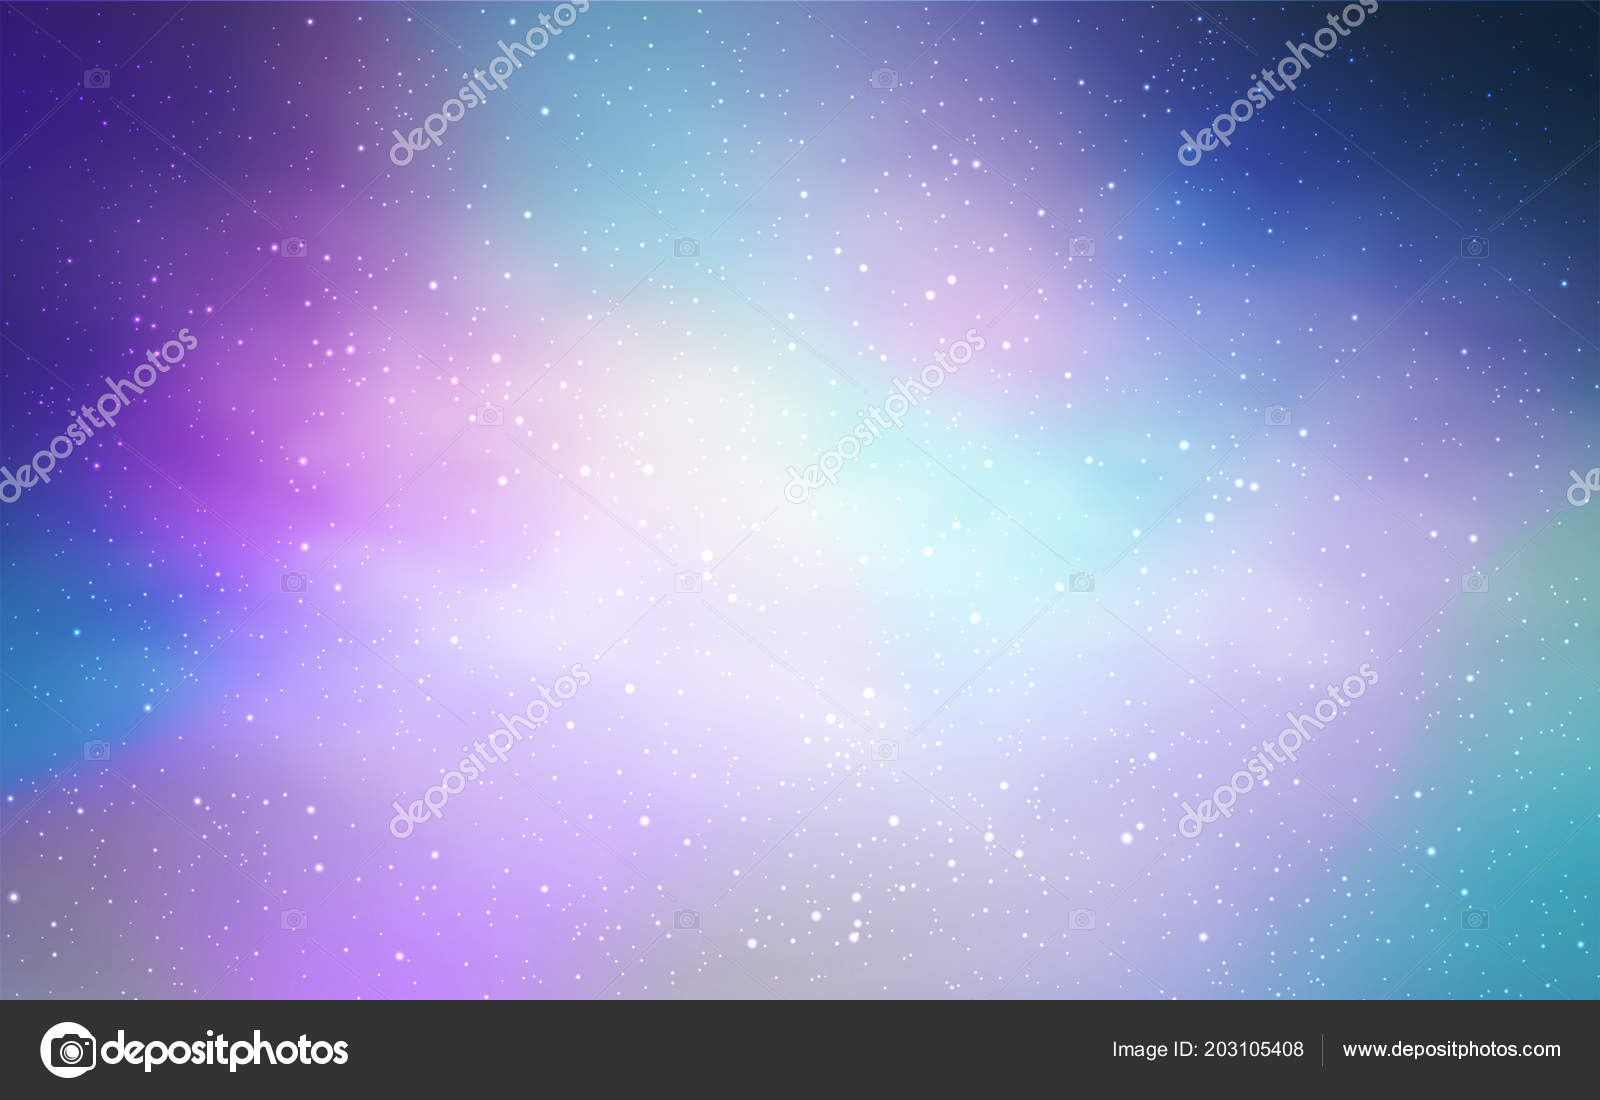 depositphotos 203105408 stock illustration light pink blue vector background